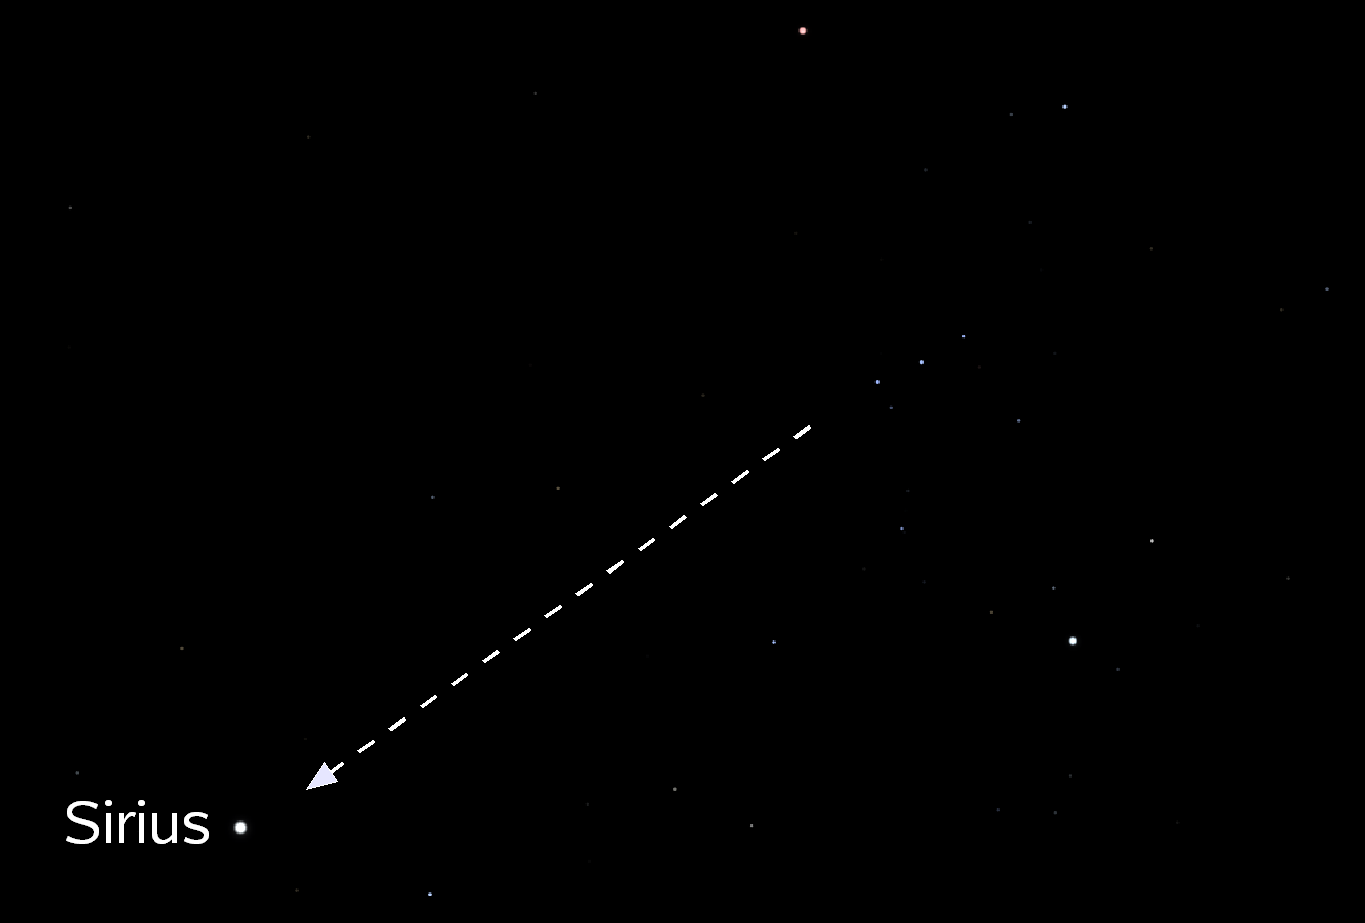 Sirius Orion Belt